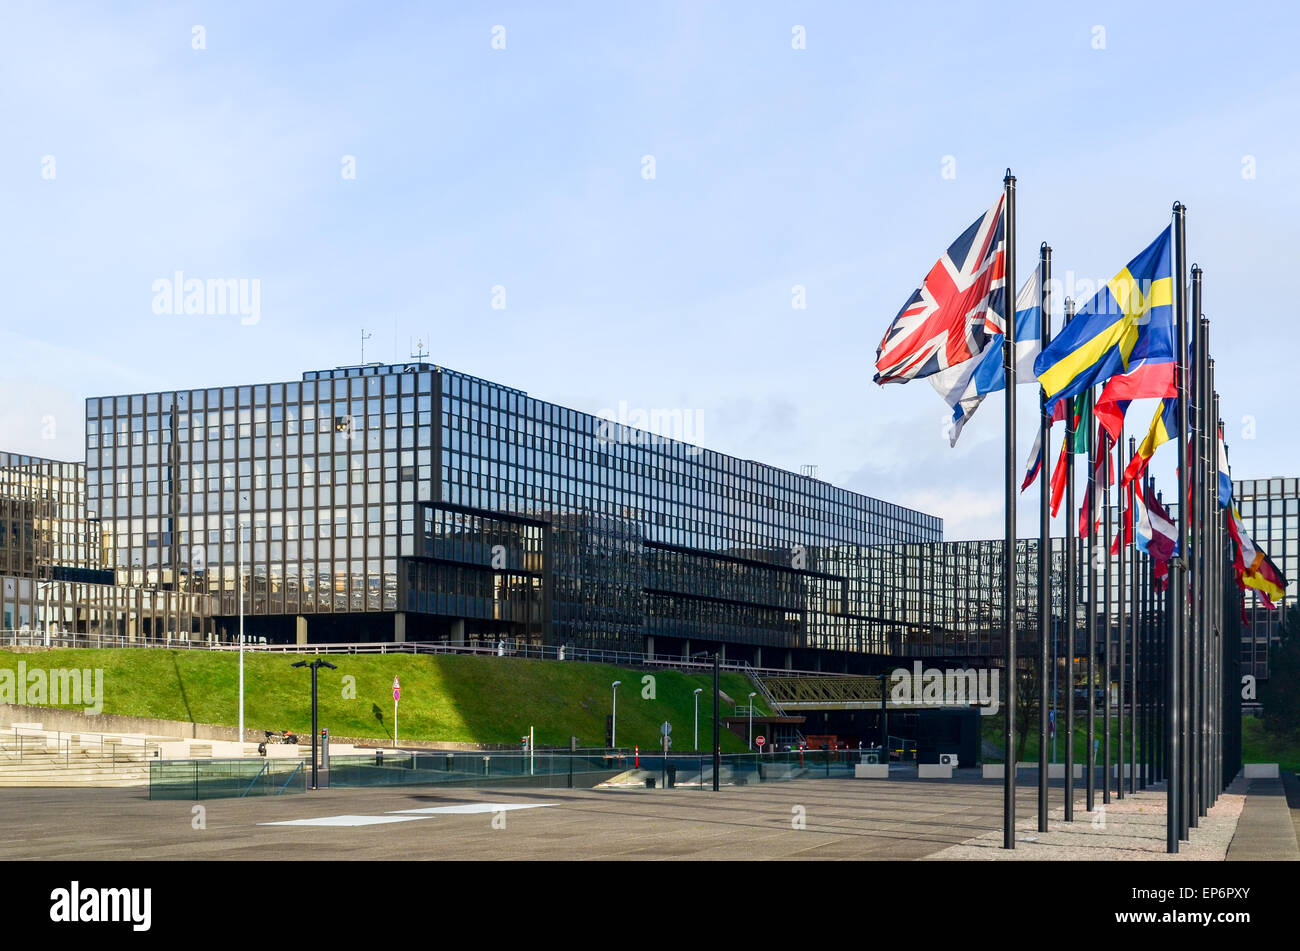 Union Jack at the European Commission (Bâtiment Jean Monnet) in the European Quarter, Kirchberg, Luxembourg - Stock Image